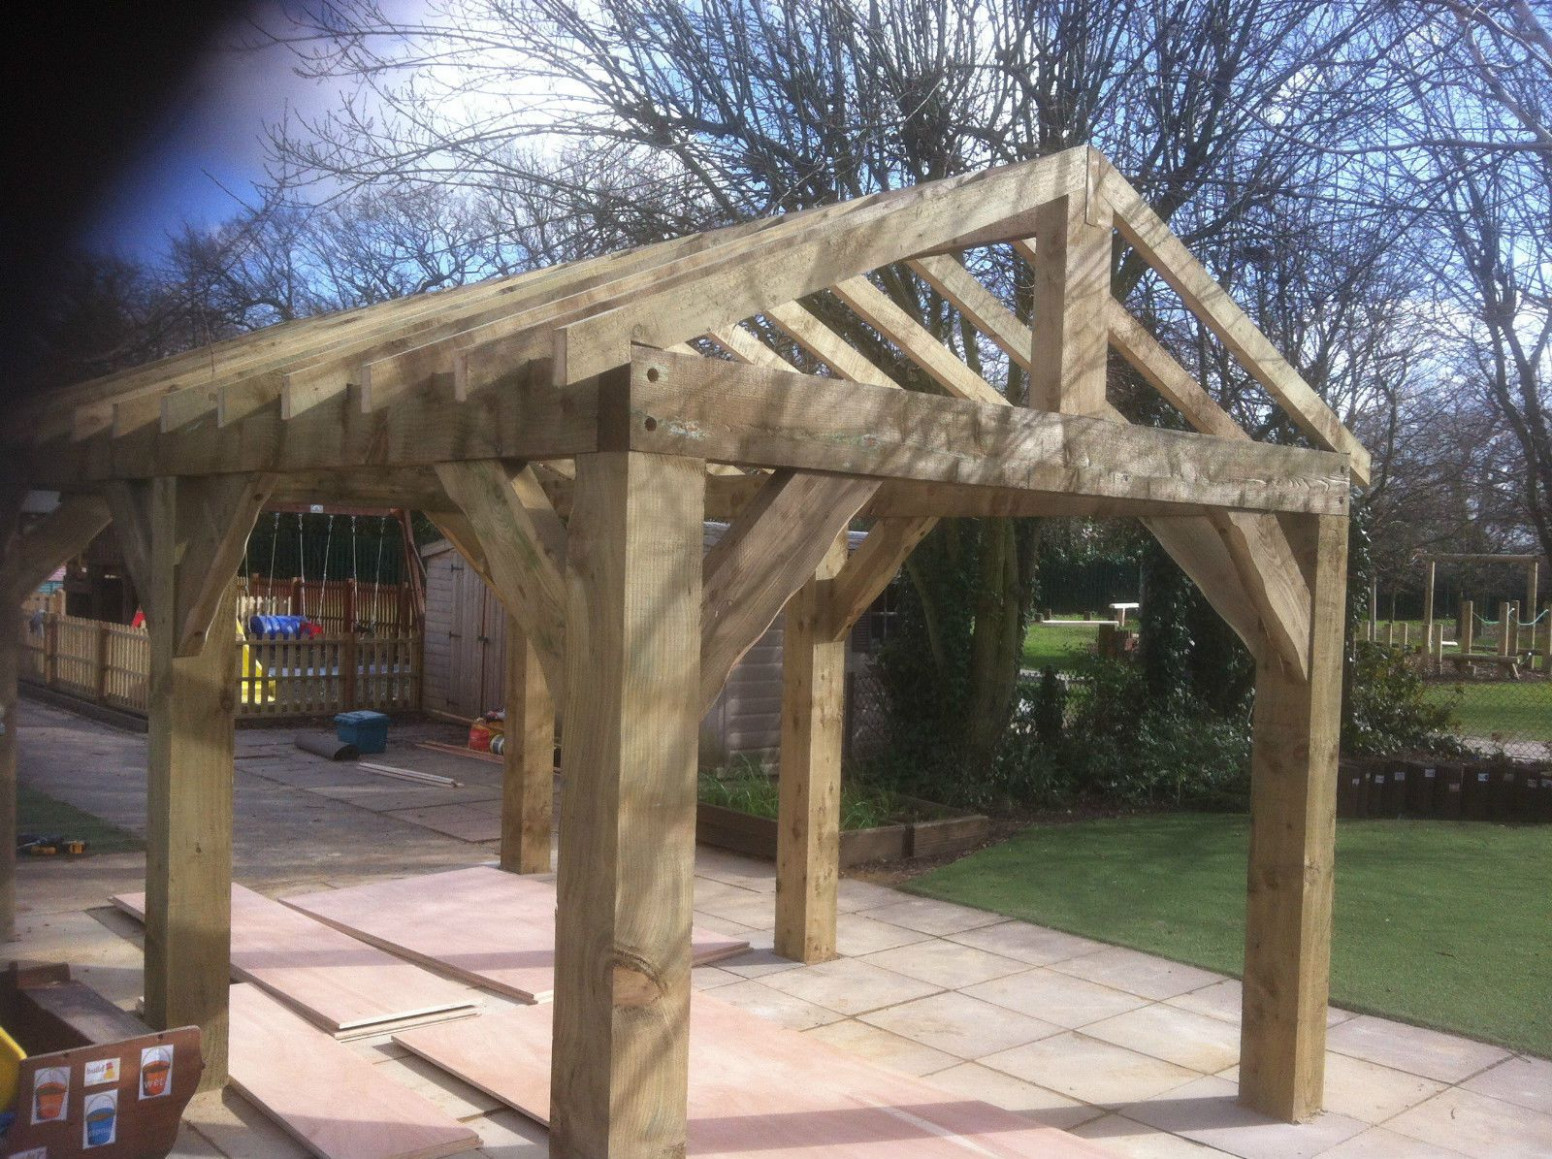 Details About Wooden Garden Shelter, Structure, Gazebo, Hot ..